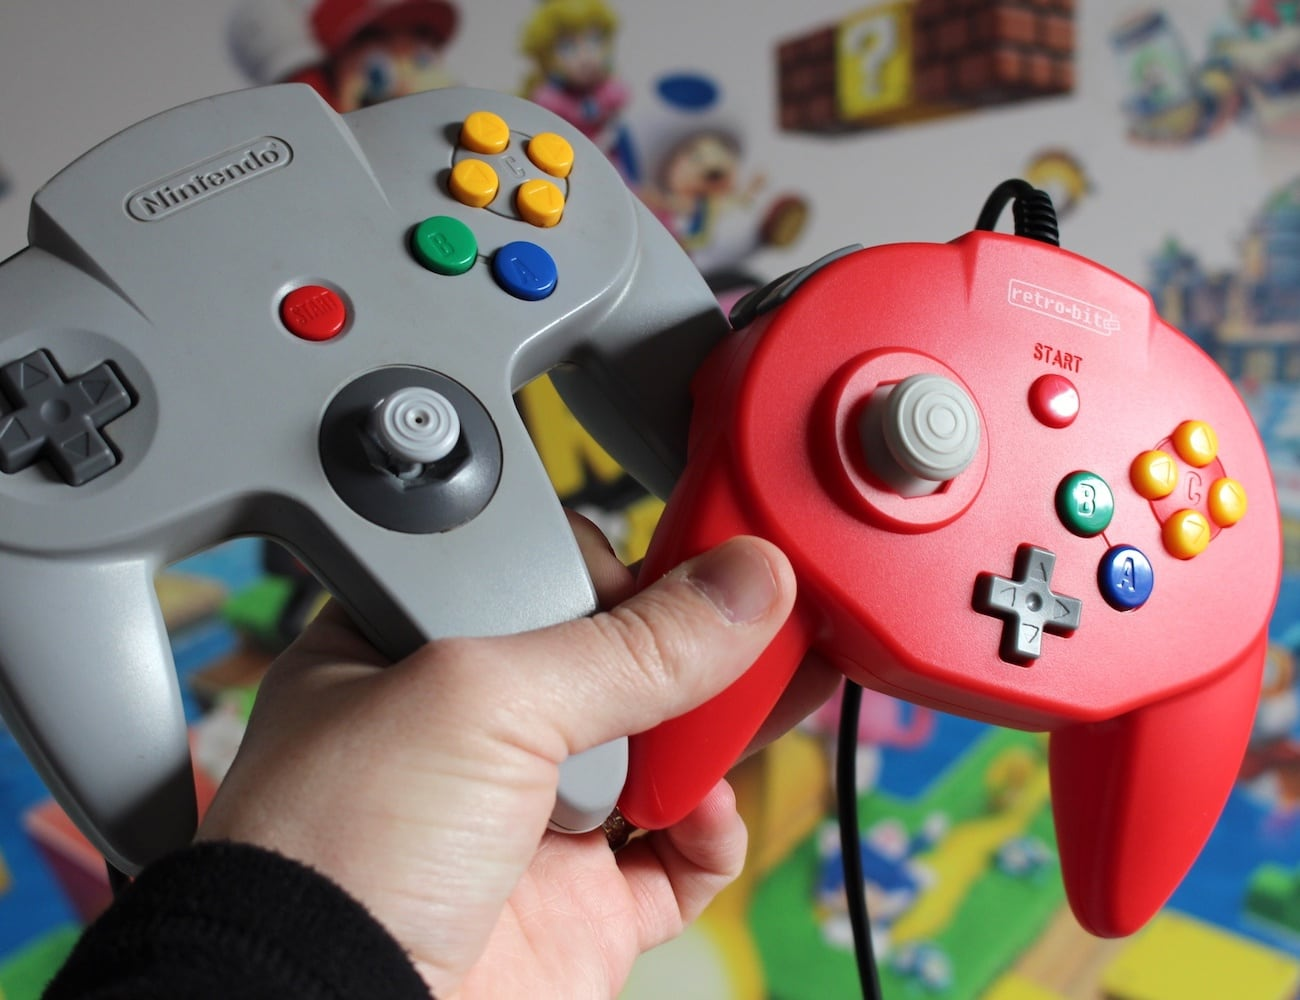 Retro-Bit Tribute64 Modern N64 Controller is a redesign of the classic video game controller